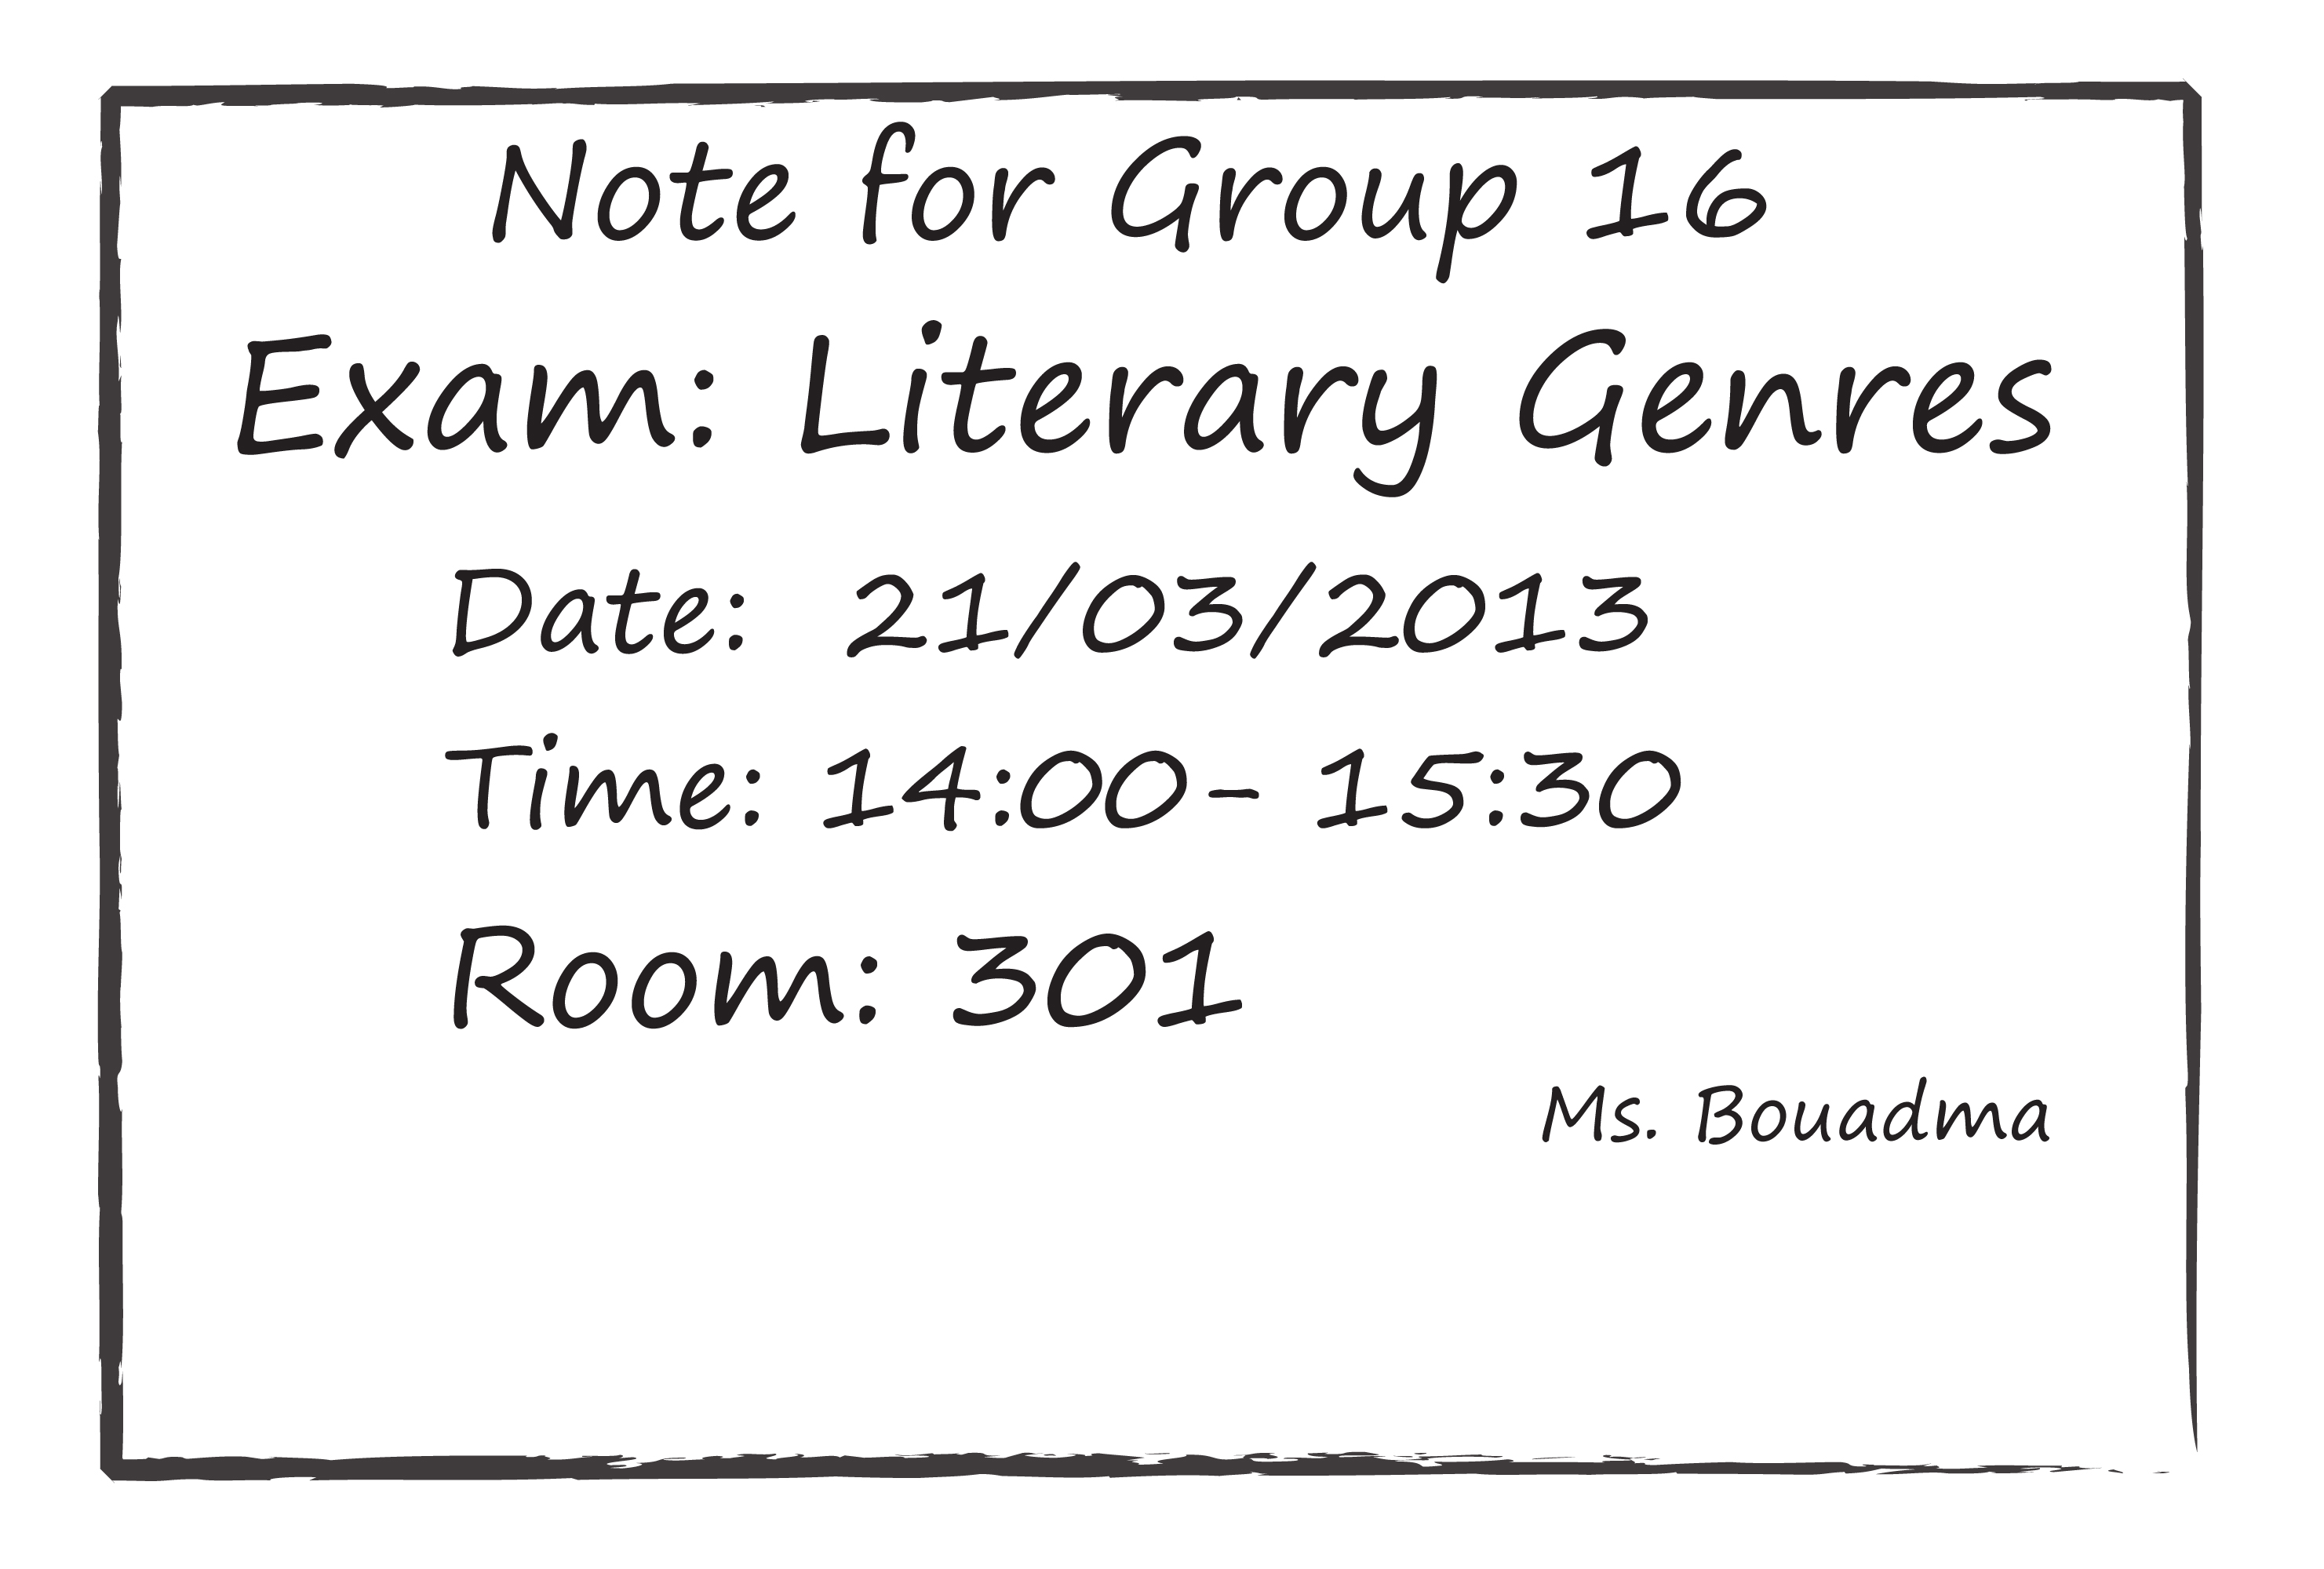 Group 16 Literary Genres Exam Resources For 1st Year L M D Students